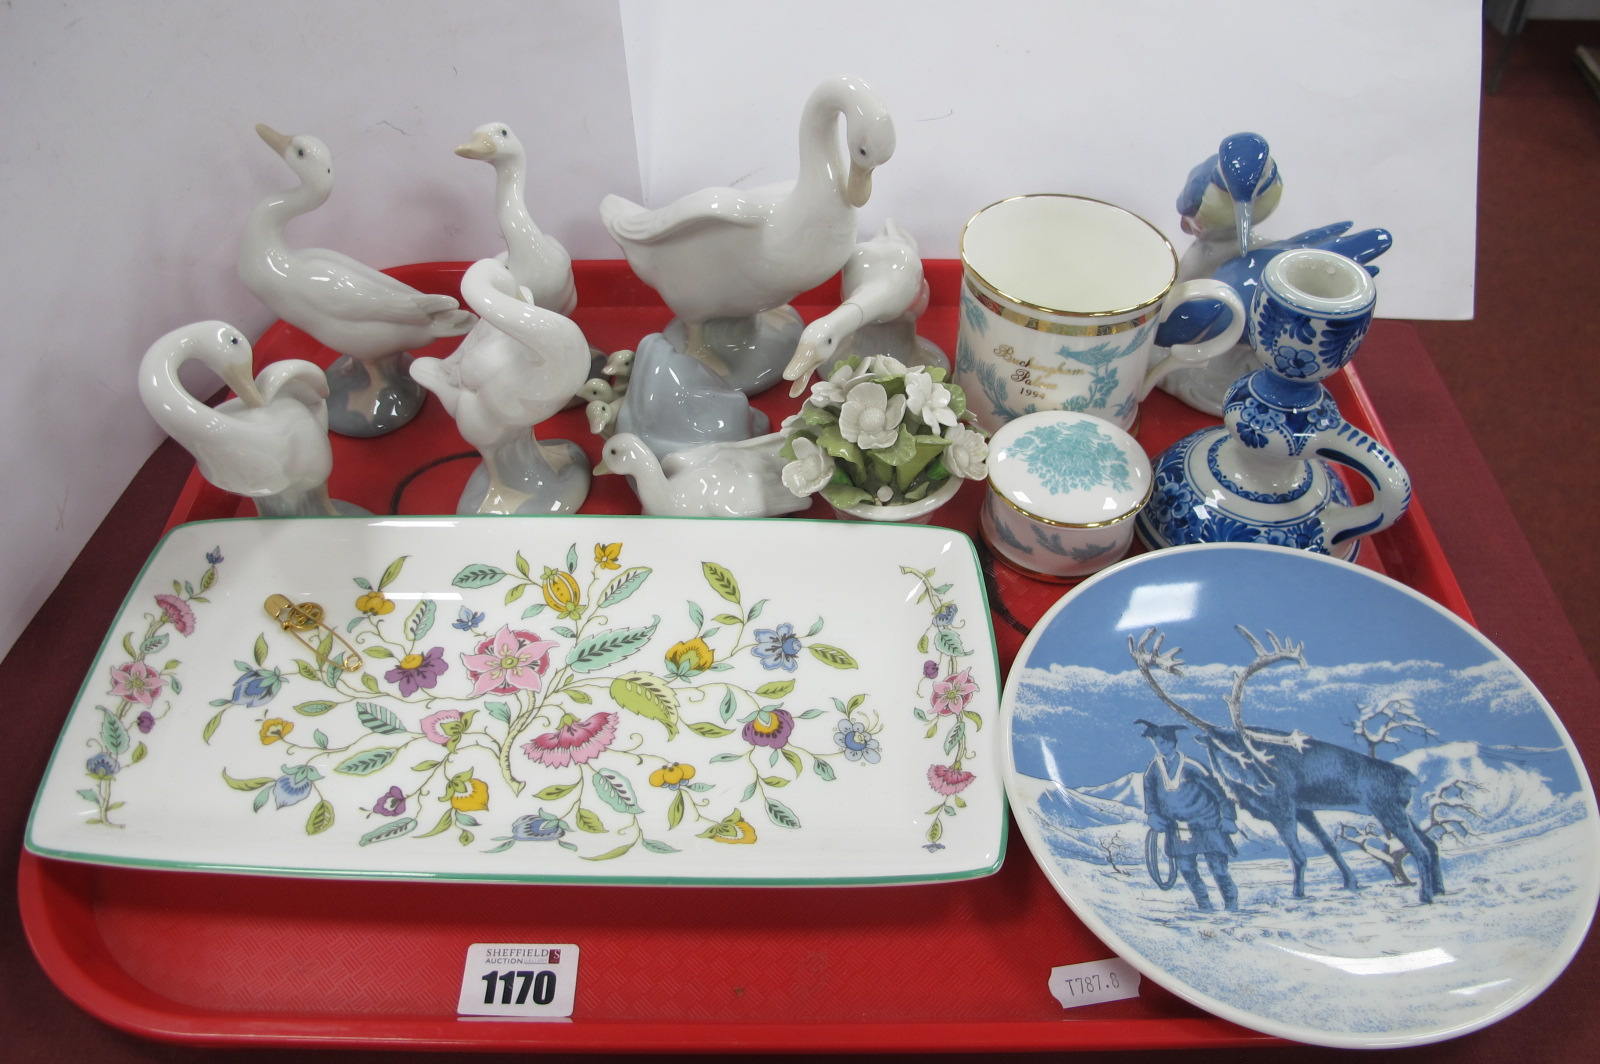 Lladro, Nao and Other Geese, Minton 'Haddon Hall' rectangular dish, Porsgrund reindeer plates, etc:-